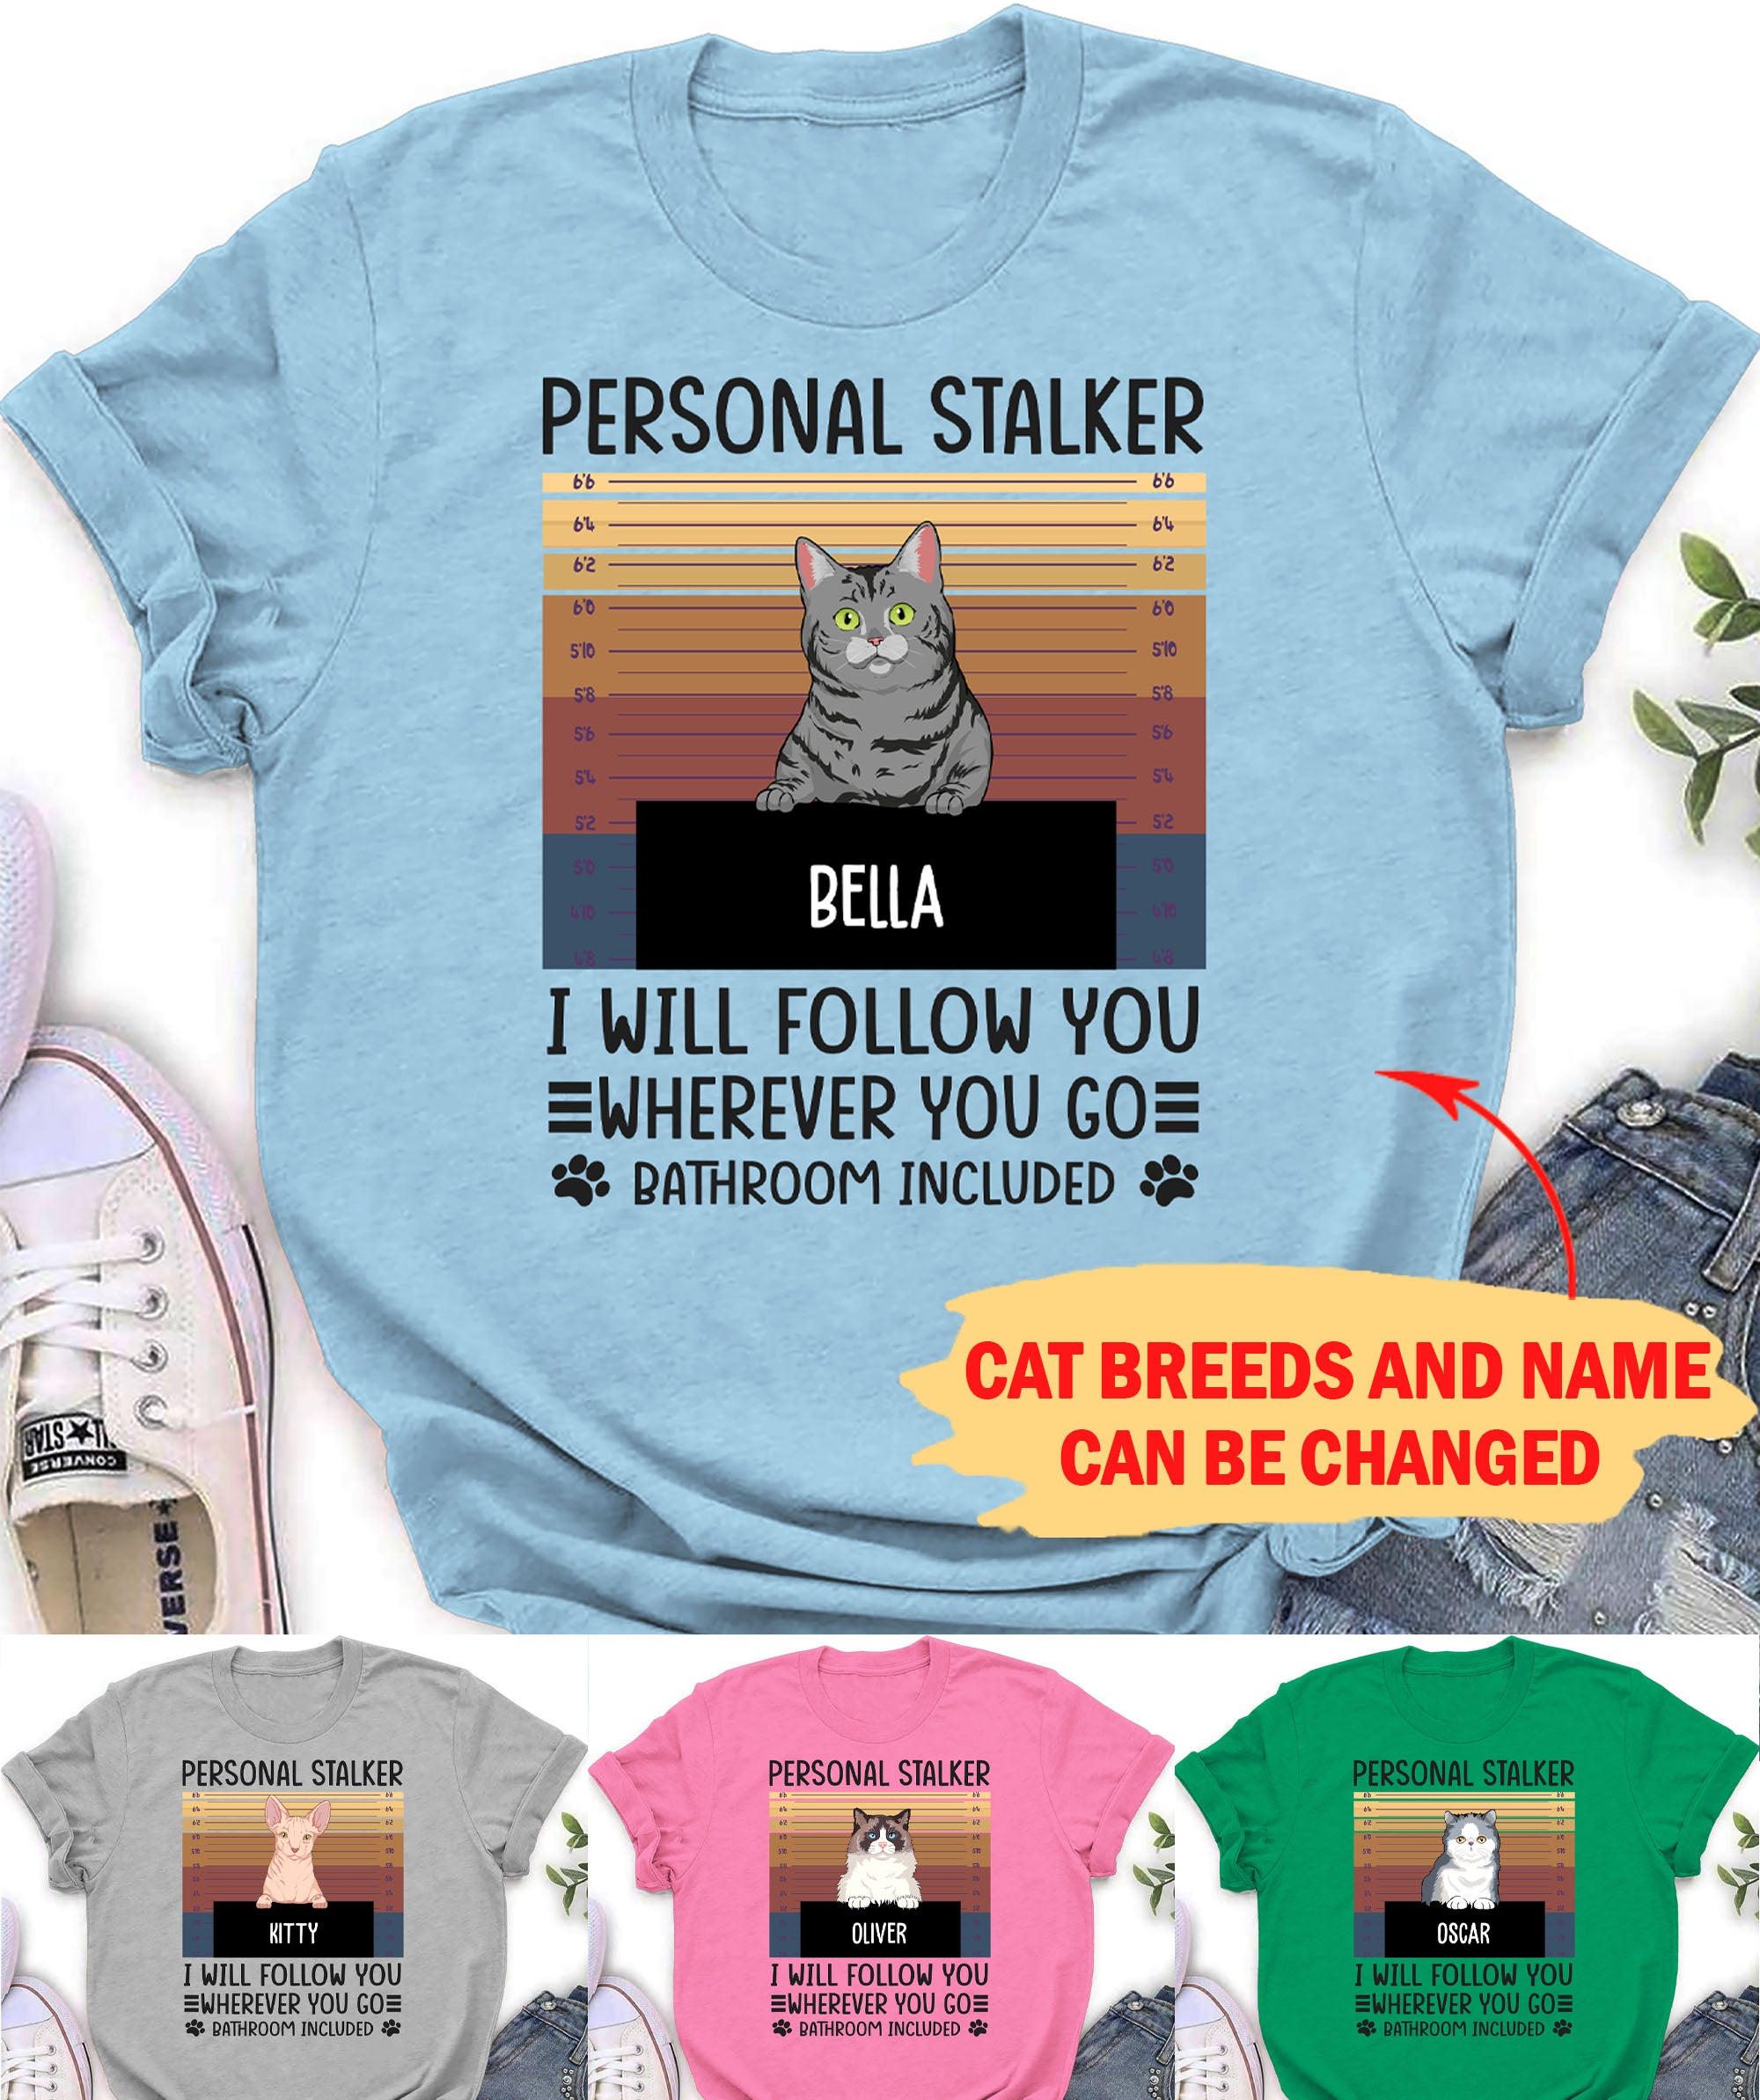 Personal Stalker Cat - Personalized Custom Unisex T-shirt